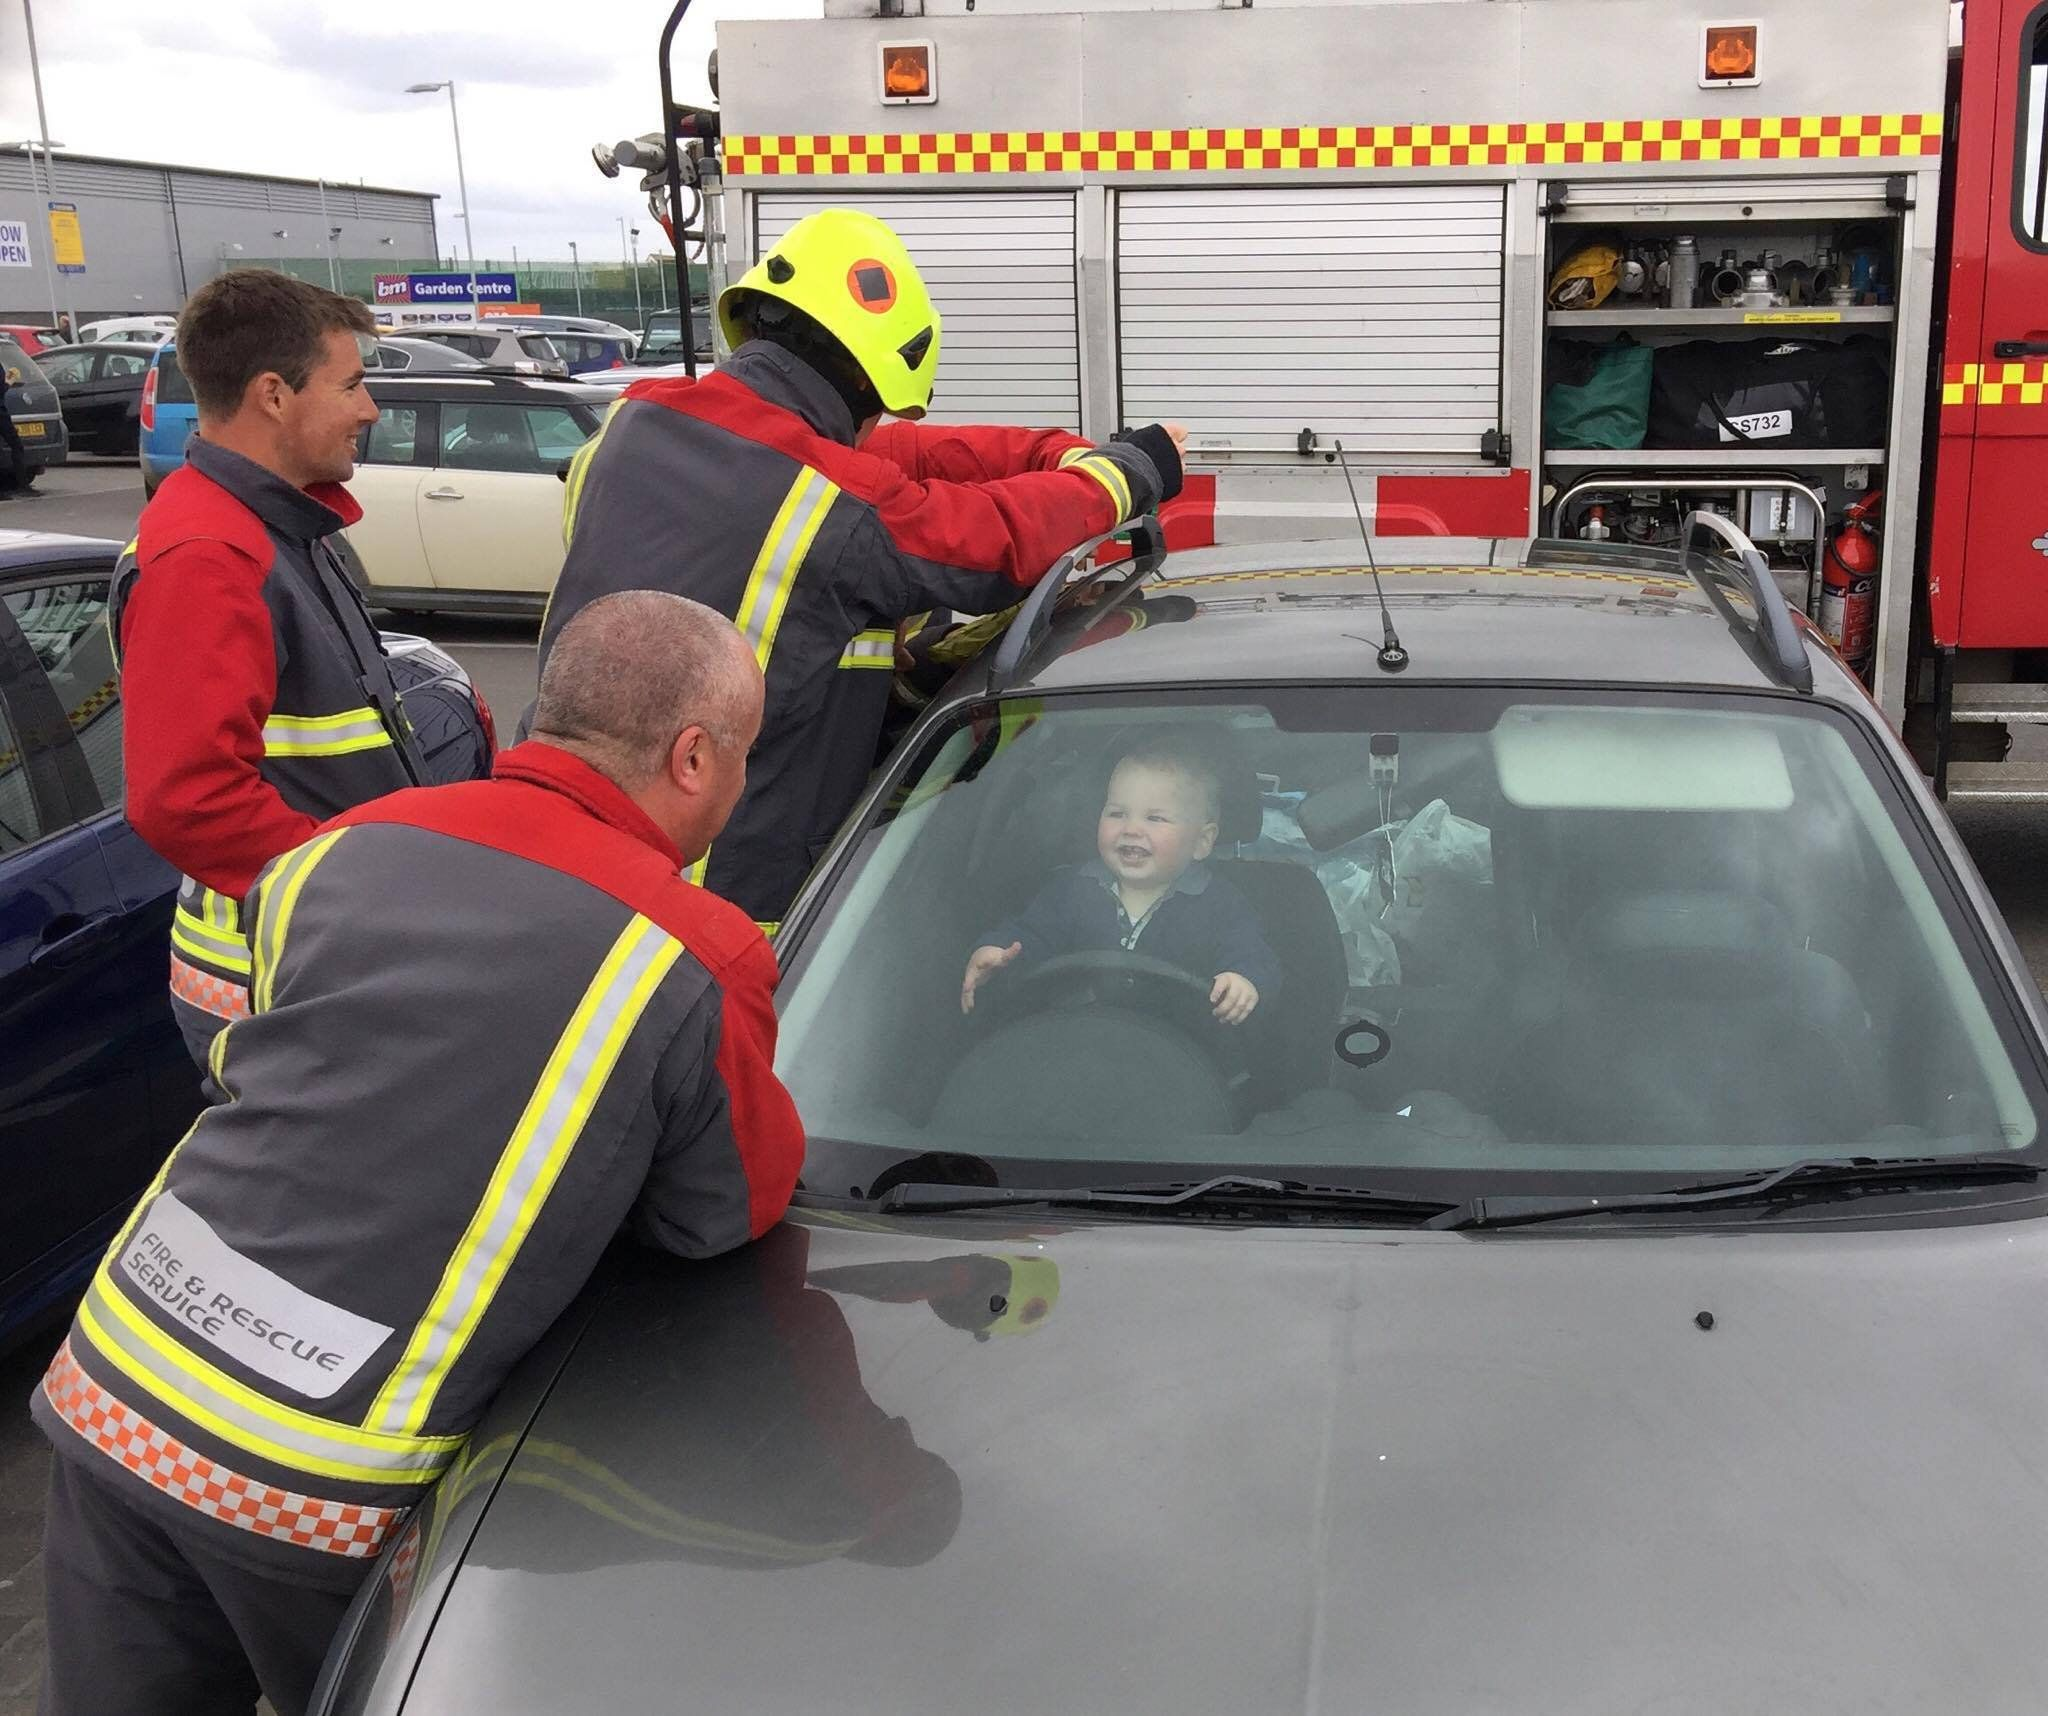 Brandon Green,18 months old locked in the car with a fire fighter keeping him entertained in Bude, Cornwall. See SWNS copy SWTOT: THIS is the heart-warming moment a toddler is entertained by a burly fireman as his colleagues battle to free him from a locked car. Little Brandon Green, 18 months, can be seen bearing a huge, adorable grin as he clutches the steering wheel of his mum's motor after accidentally locking himself in.Crews from Bude Community Fire Station responded to a call on Friday from the mother of the toddler who had accidentally got locked in the car outside Lidl in Bude, Cornwall.